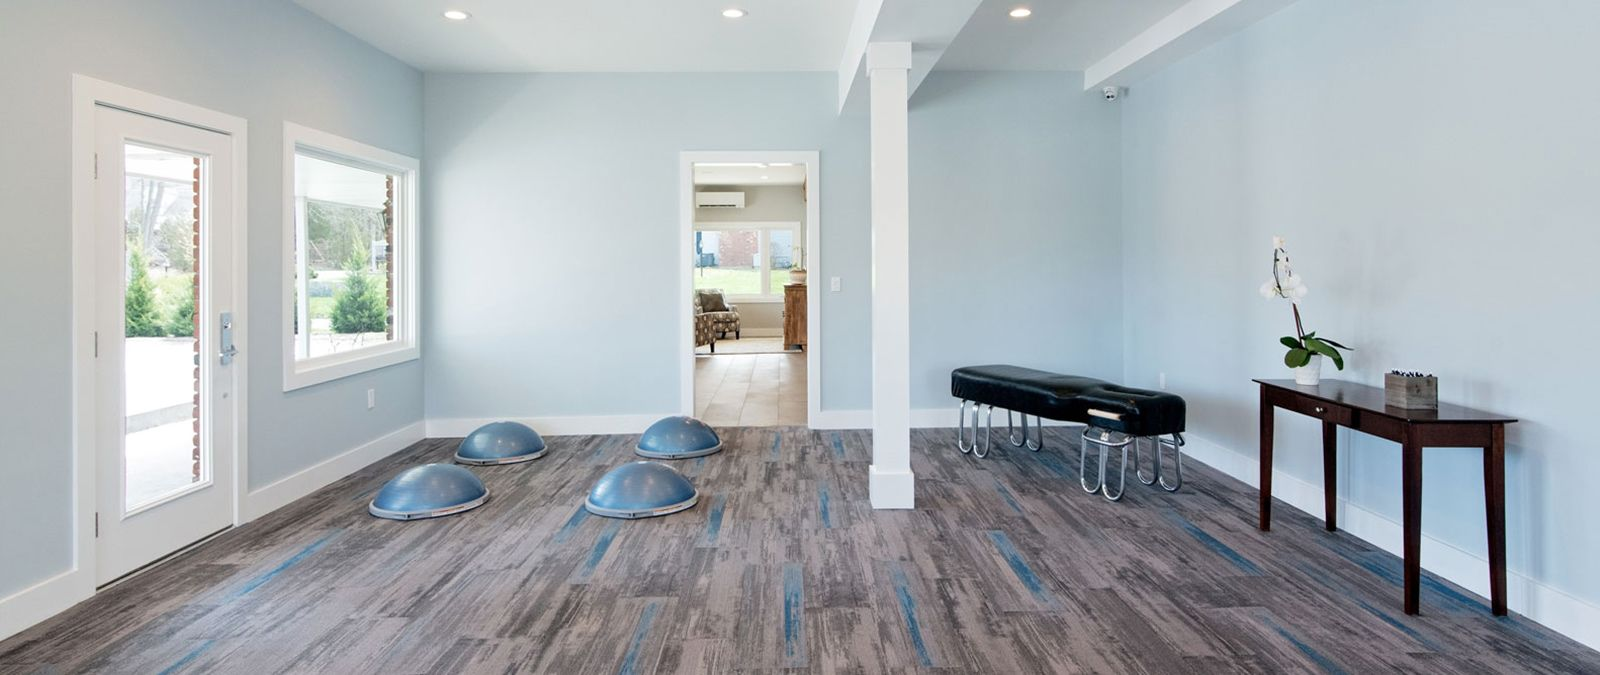 Coastal Chiropractic & Wellness' physical therapy room